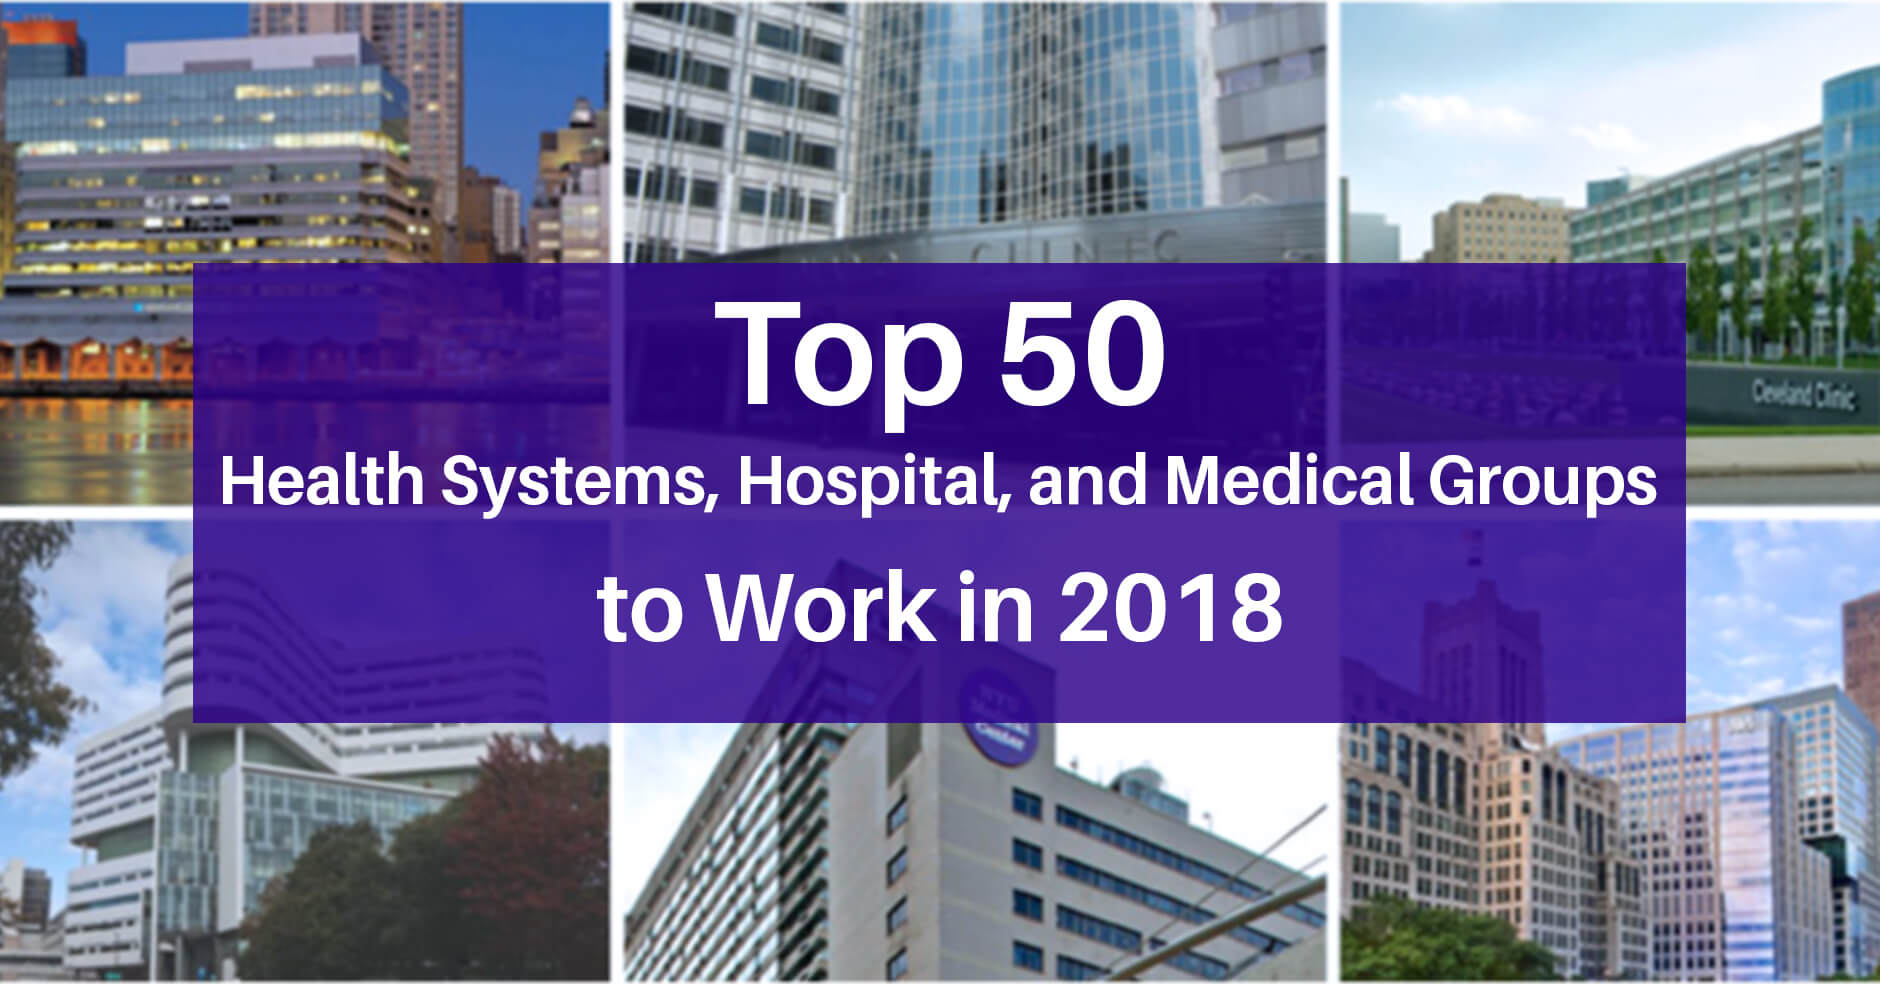 Top 50 Health Systems, Hospital, and Medical Groups to Work in 2018